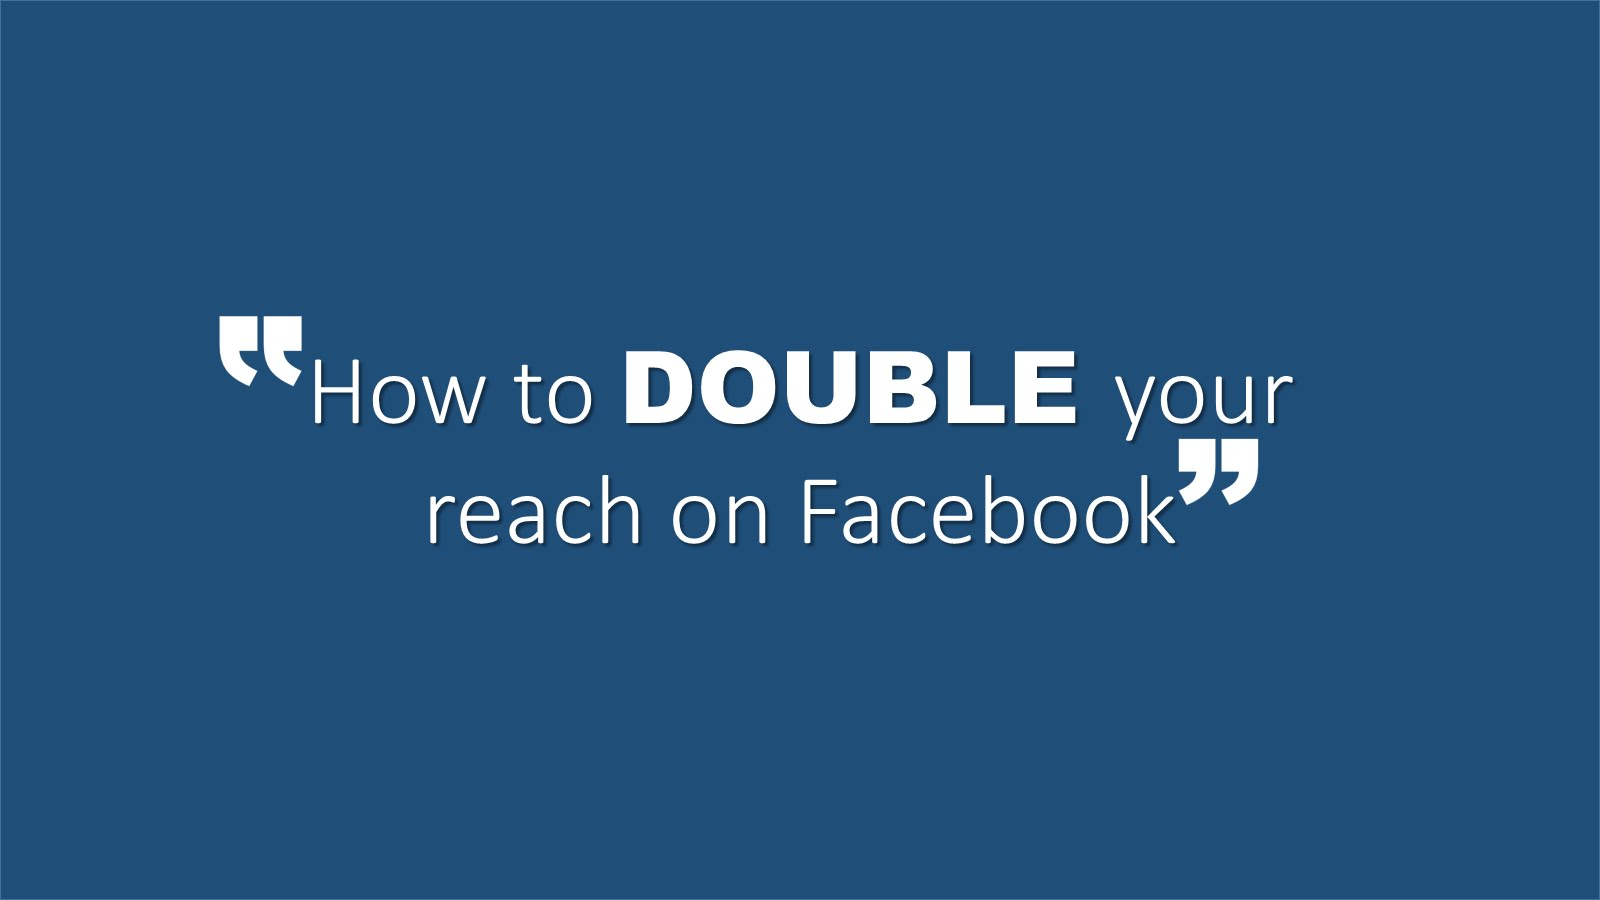 5 Tips To Increase Fanbase On Your Facebook Page